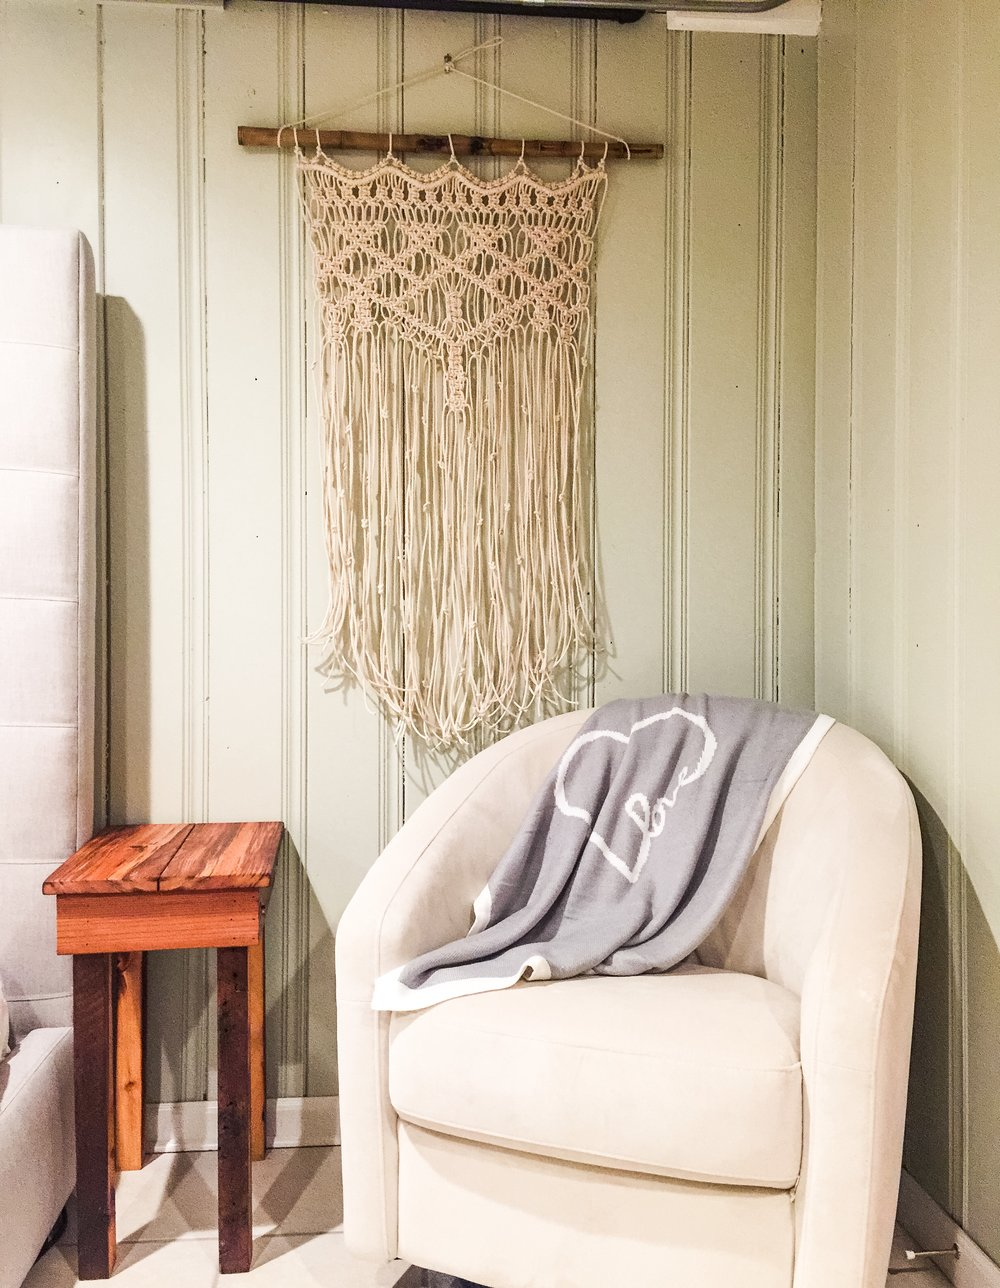 Our new family room, with our gorgeous new Macrame Wall Hanging from Monroe Artist!